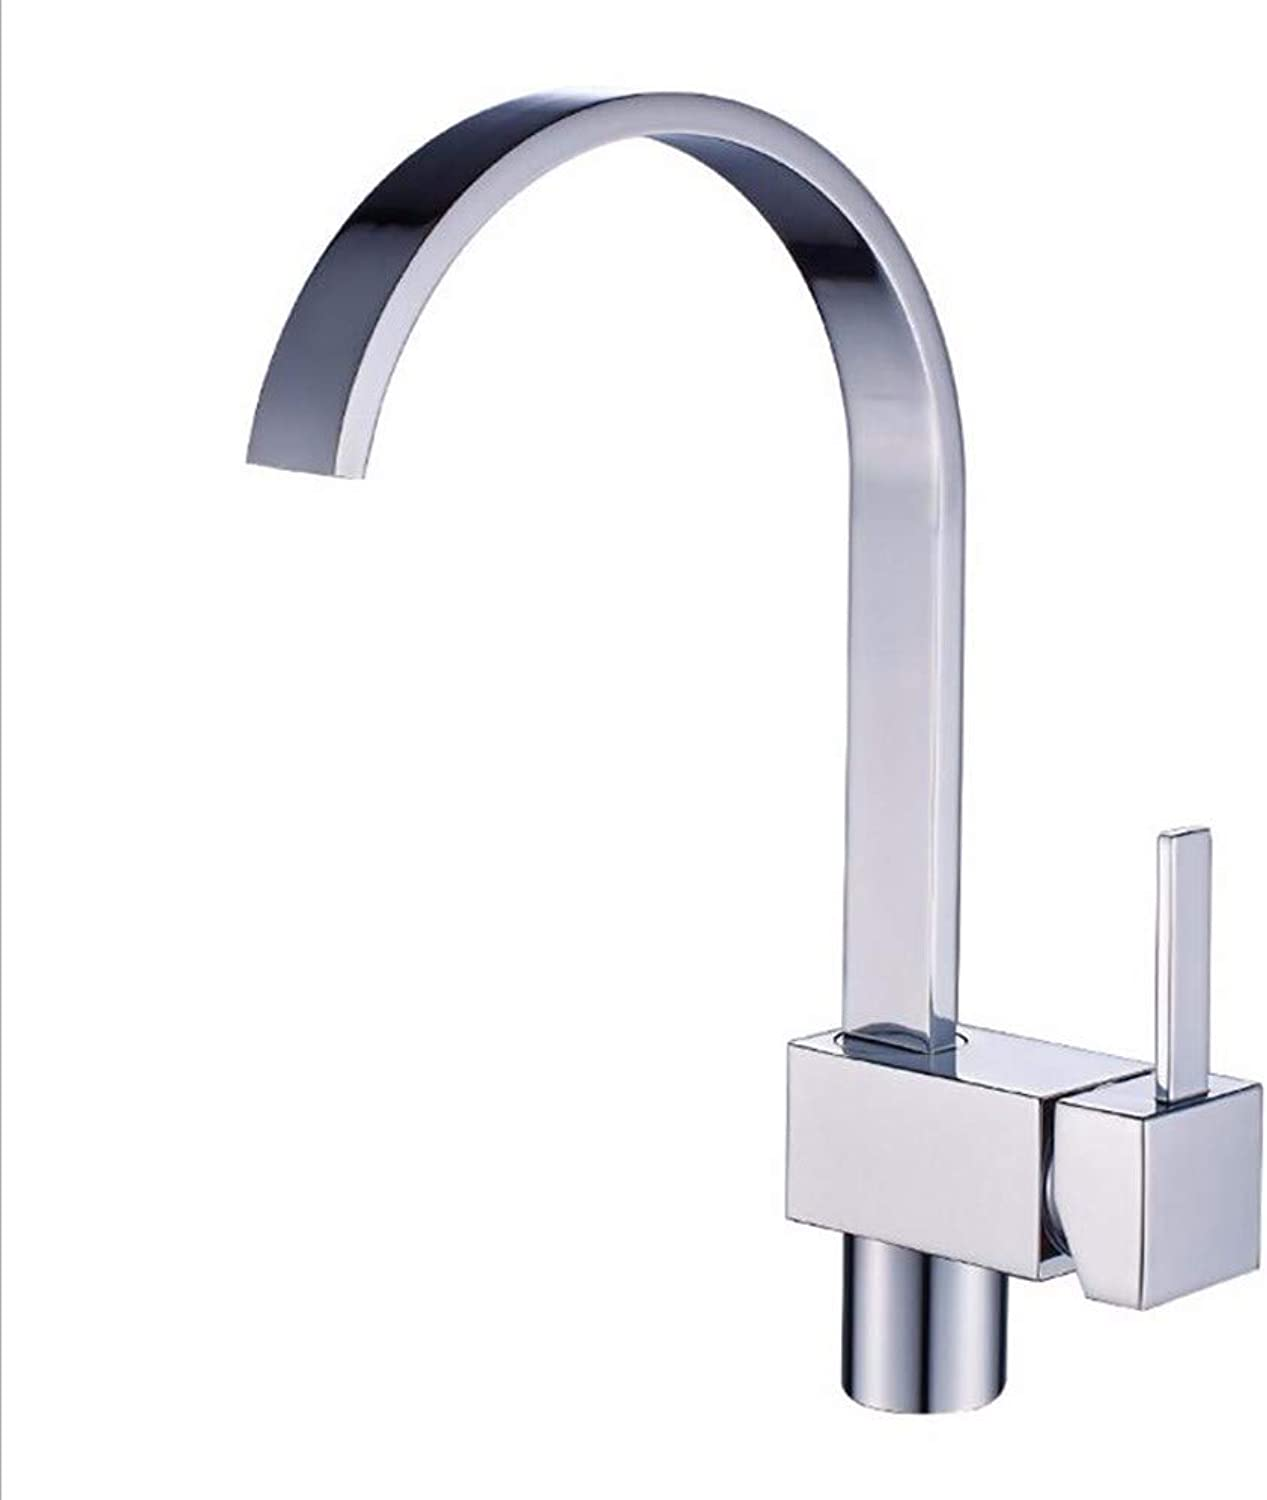 Faucet Faucet All Copper Sink Faucet Cold and hot Water Kitchen redary Faucet